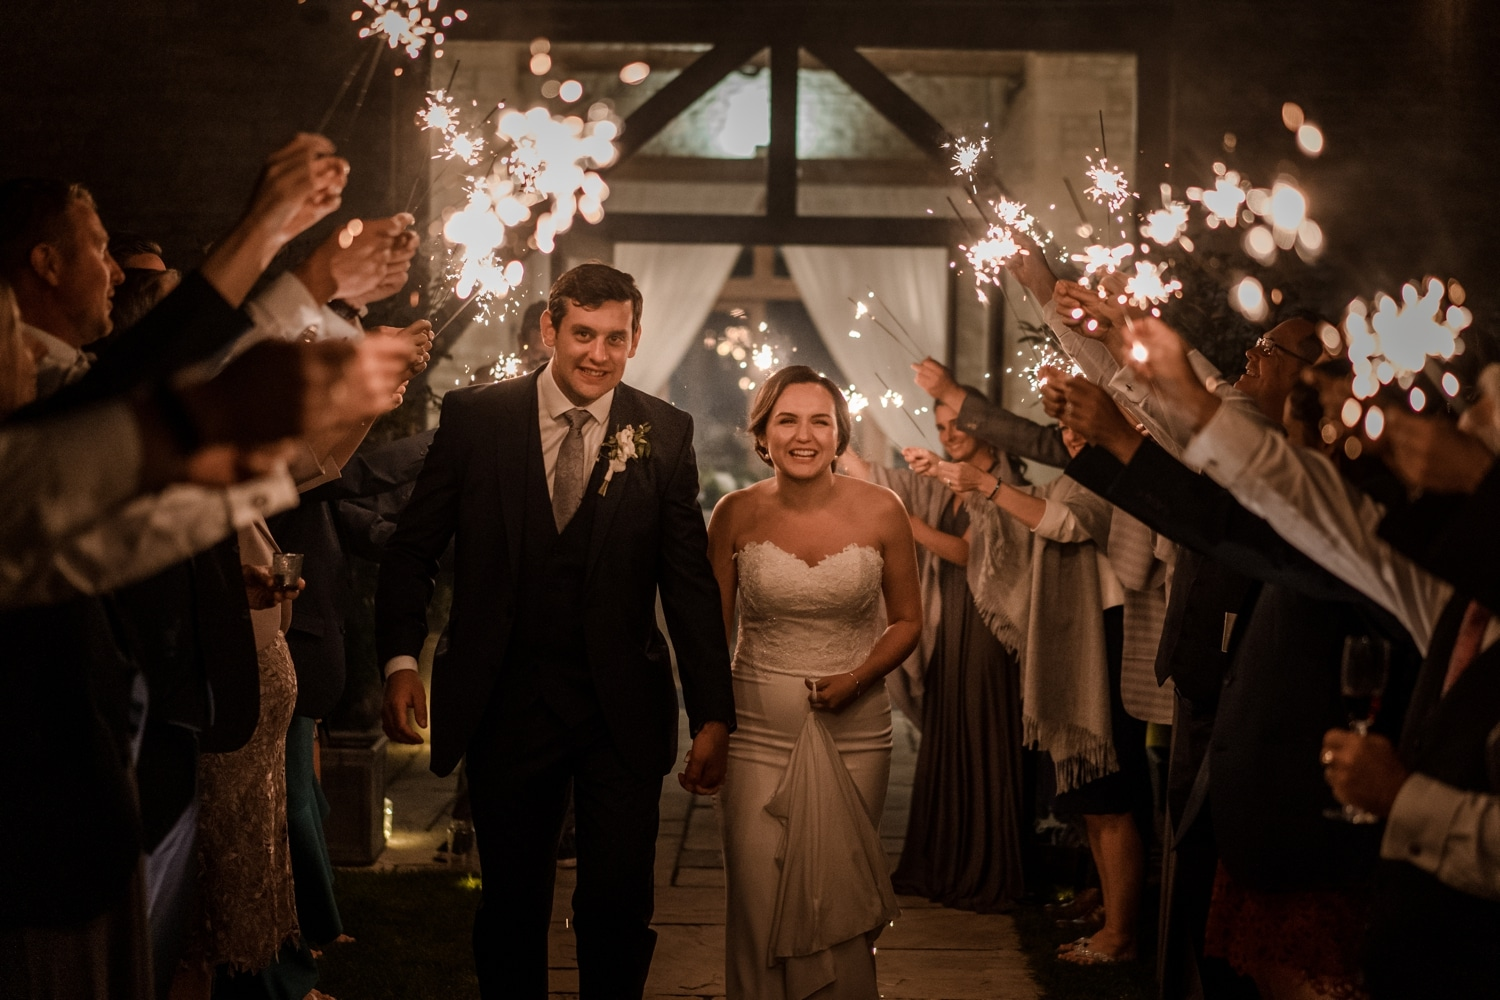 Sparklers at Upcote barn